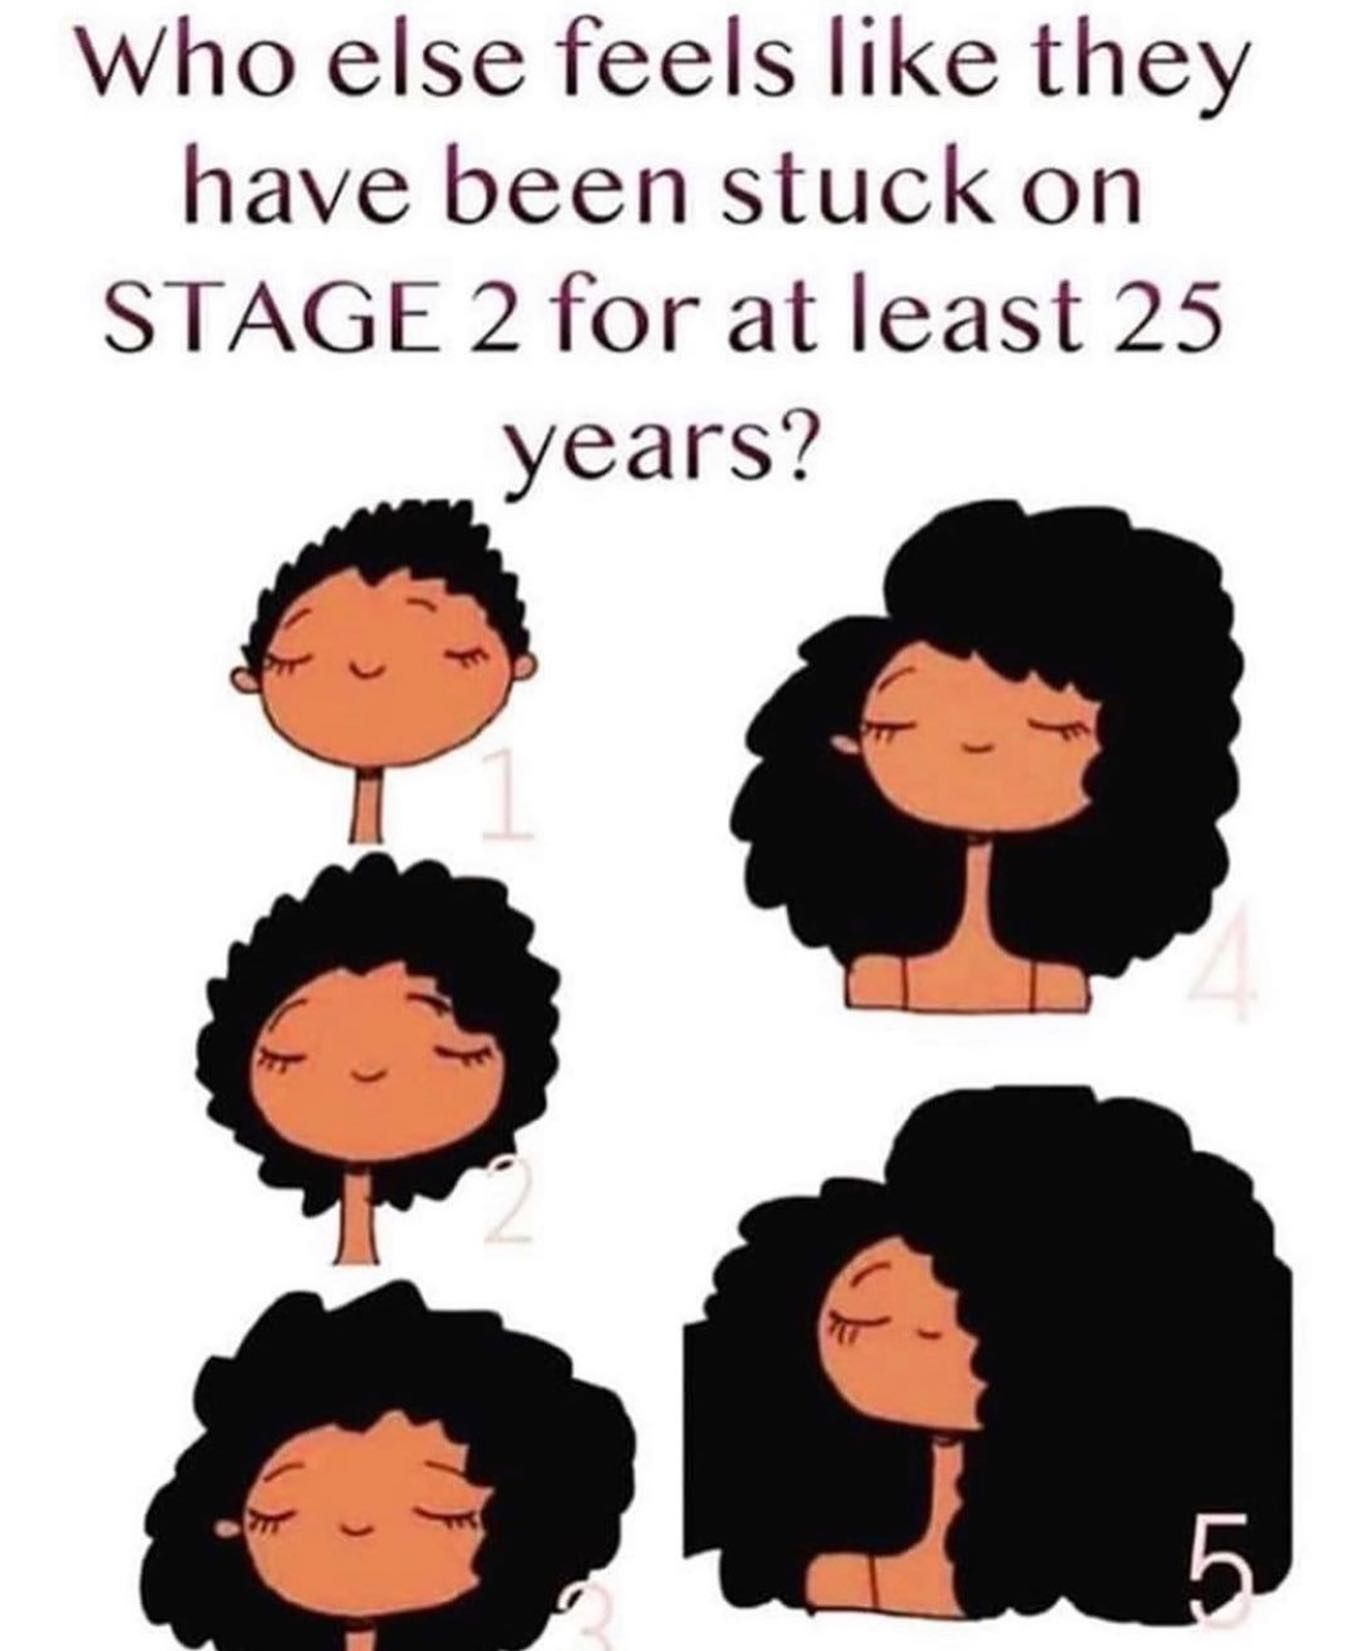 Mines been stuck at stage 3 because of shrinkage for the longest. It's only looks like stage 4 when I blow dry it. 😫😩 @shopbgljewelry  #shopbgljewelry #naturalhair #naturlhairmemes #relatablememes #growinghair #shrinkage #theshrinkageisreal #protectivestyles #teamnatural #type4hair #4chair #4chairstyles #blackgirlhairstyles #blackgirlmagic  #naturalhairjourney #unconditionedroots  #naturalhairstyles #teamnatural #naturalhairroots #type4hair #kinkycoily #naturalhairdoescare #naturallyshedope #m